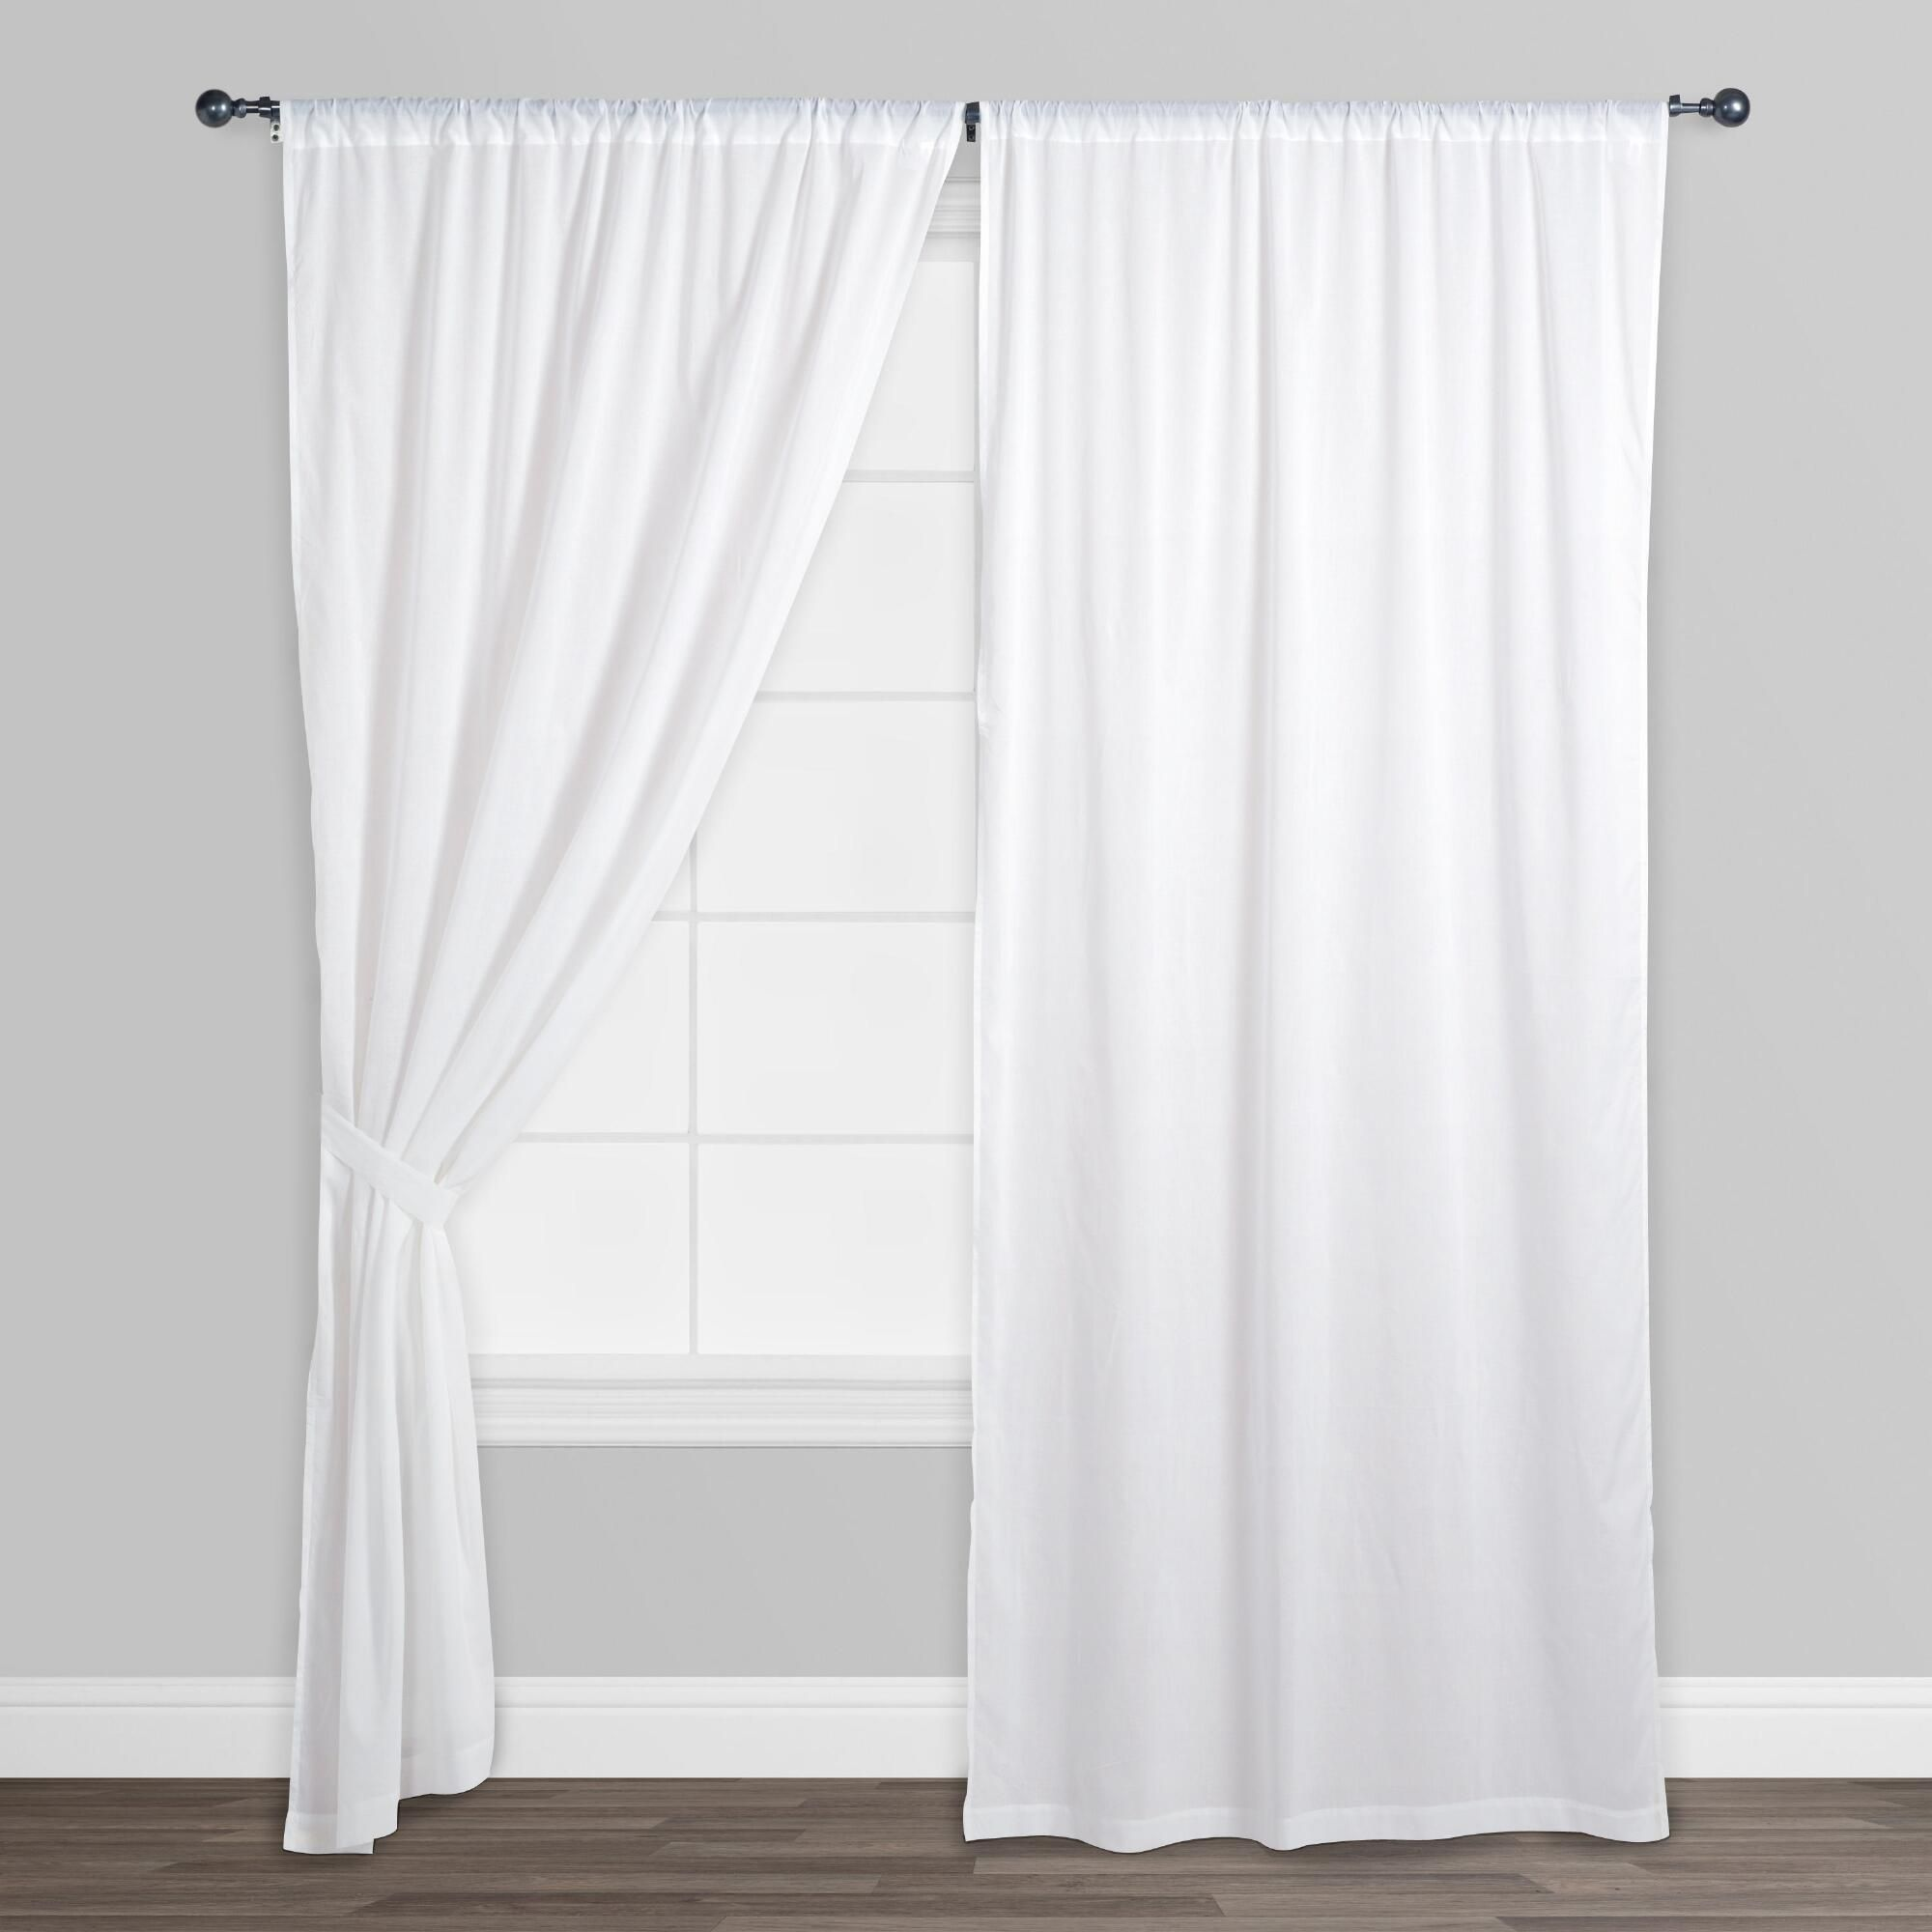 White cotton voile curtains set of diffused light ranges and